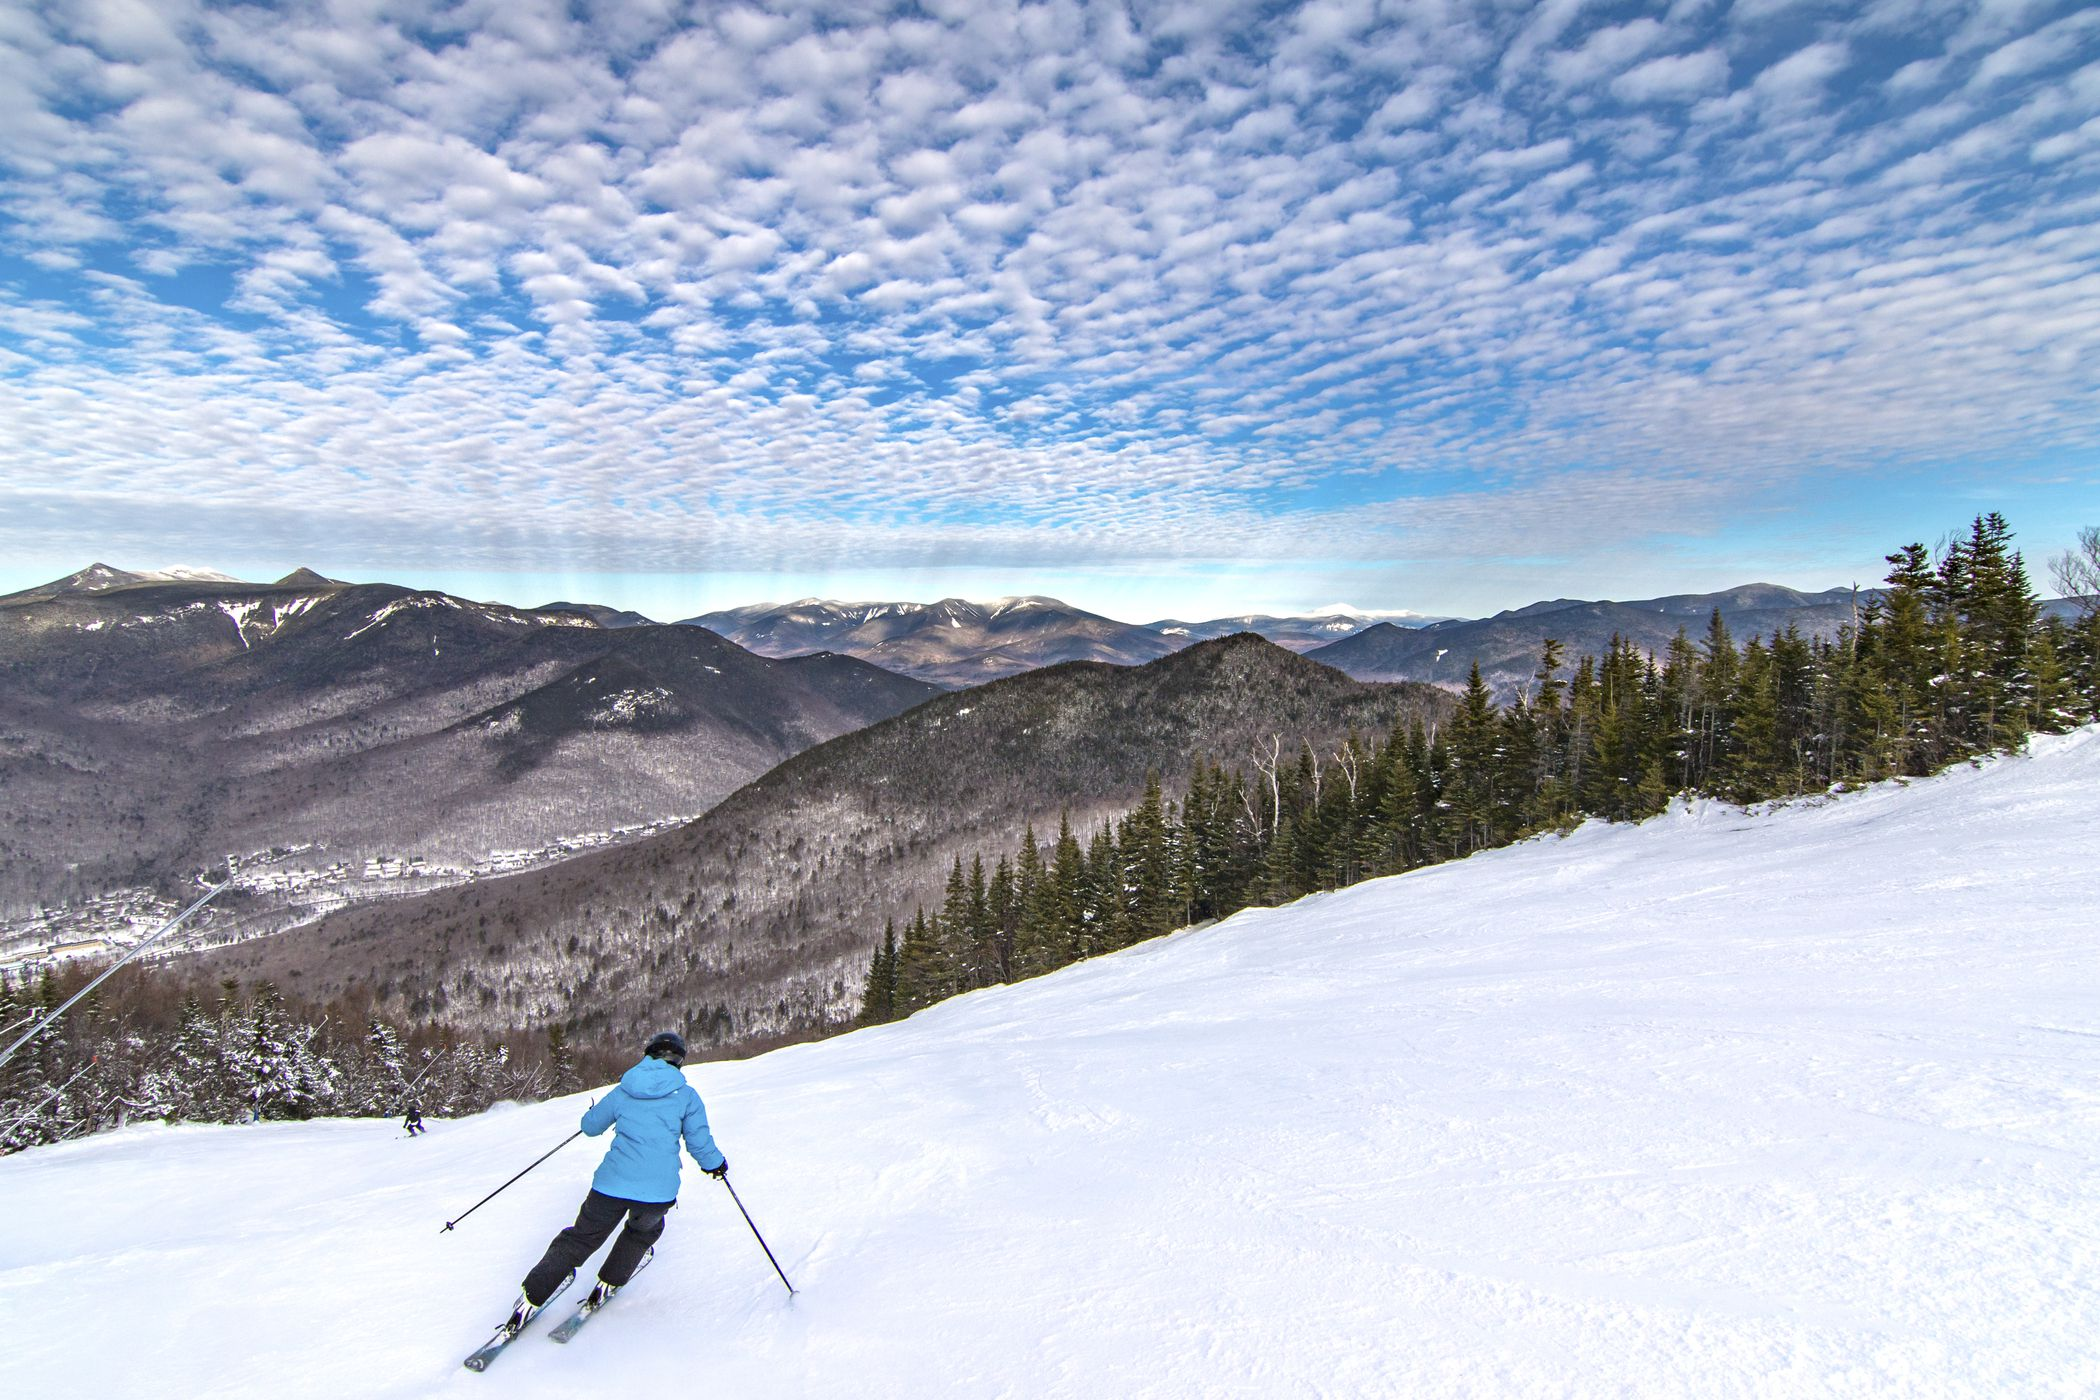 ski resort guide: loon mountain, new hampshire